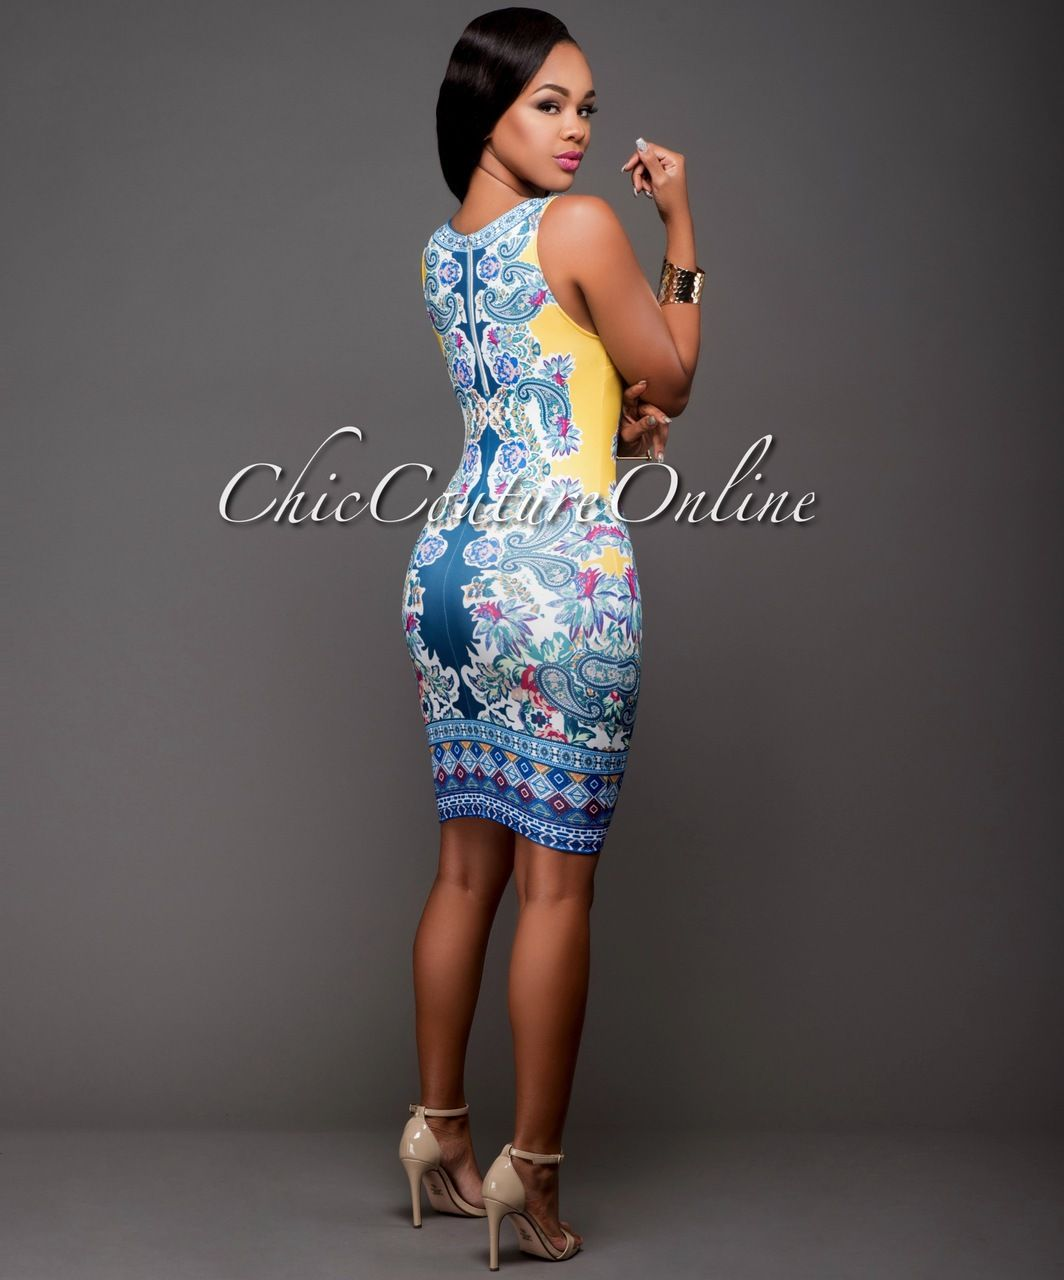 Chic couture online odelia yellow blue paisley print bodycon